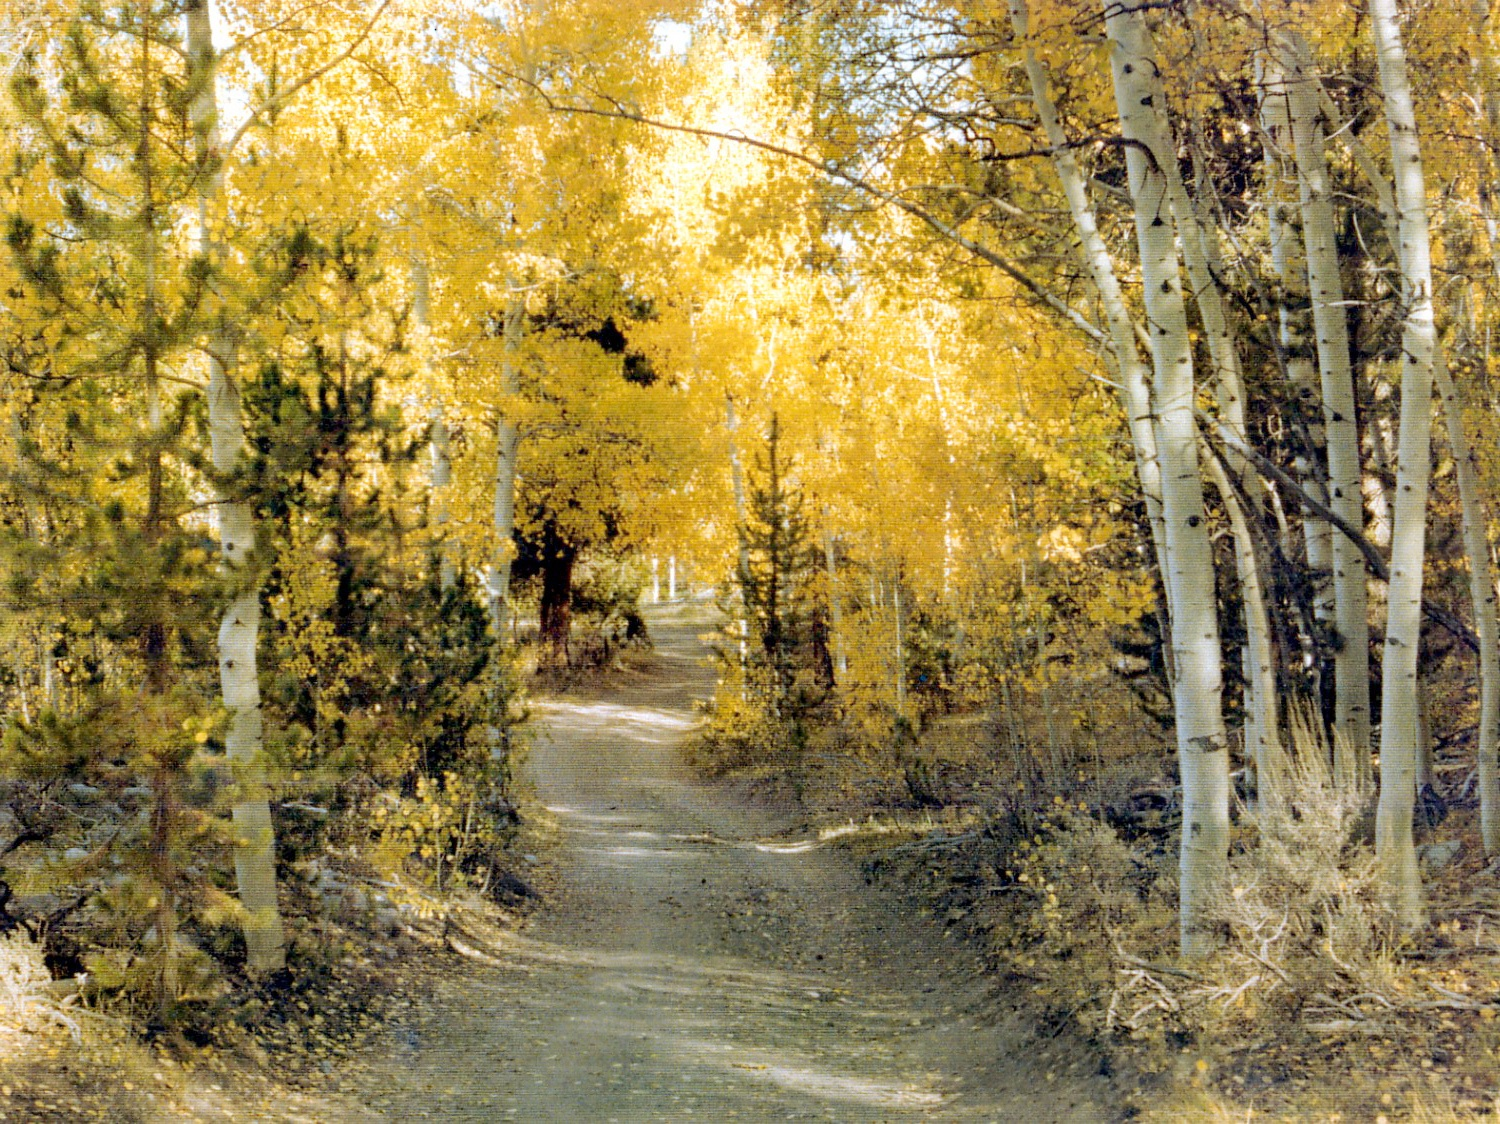 Autumn Road with Yellow Leaves